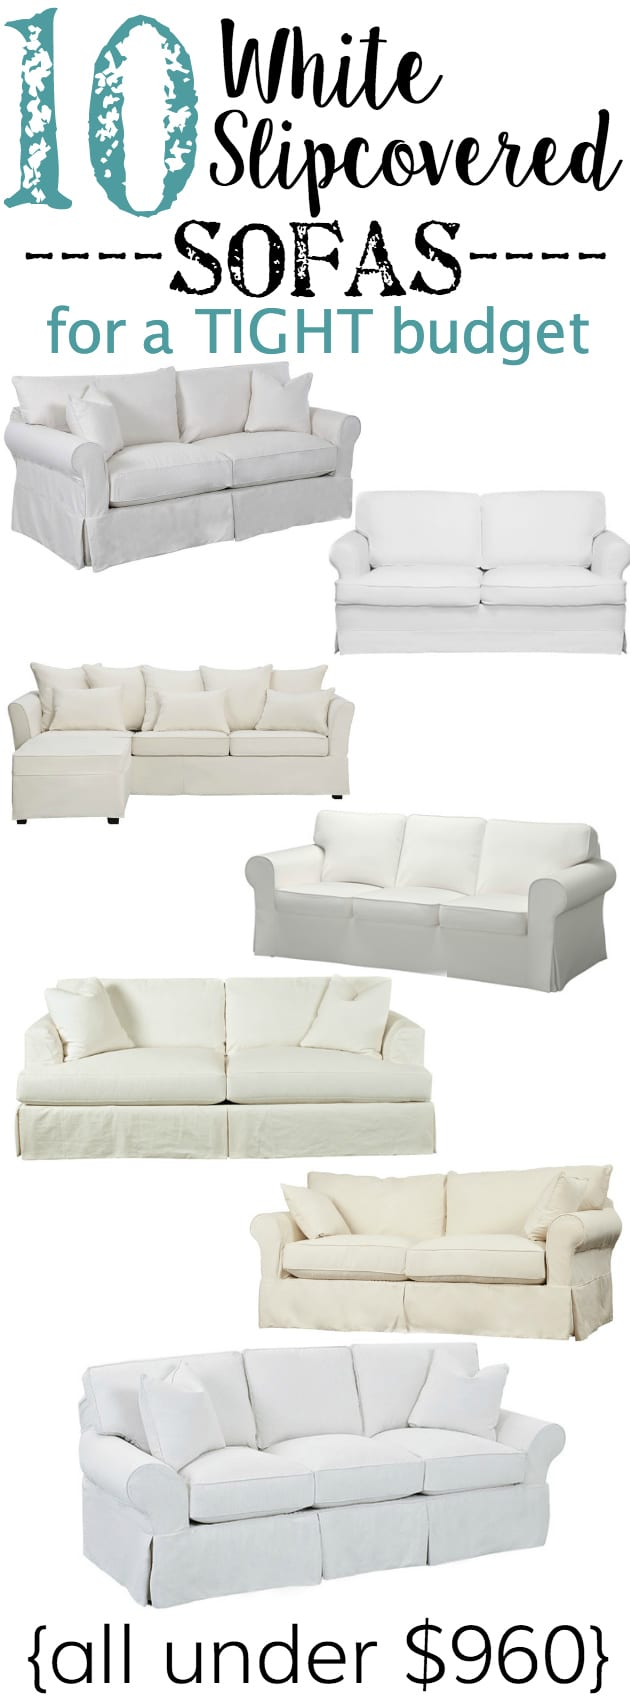 Admirable 10 White Slipcovered Sofas On A Budget Blesser House Pabps2019 Chair Design Images Pabps2019Com